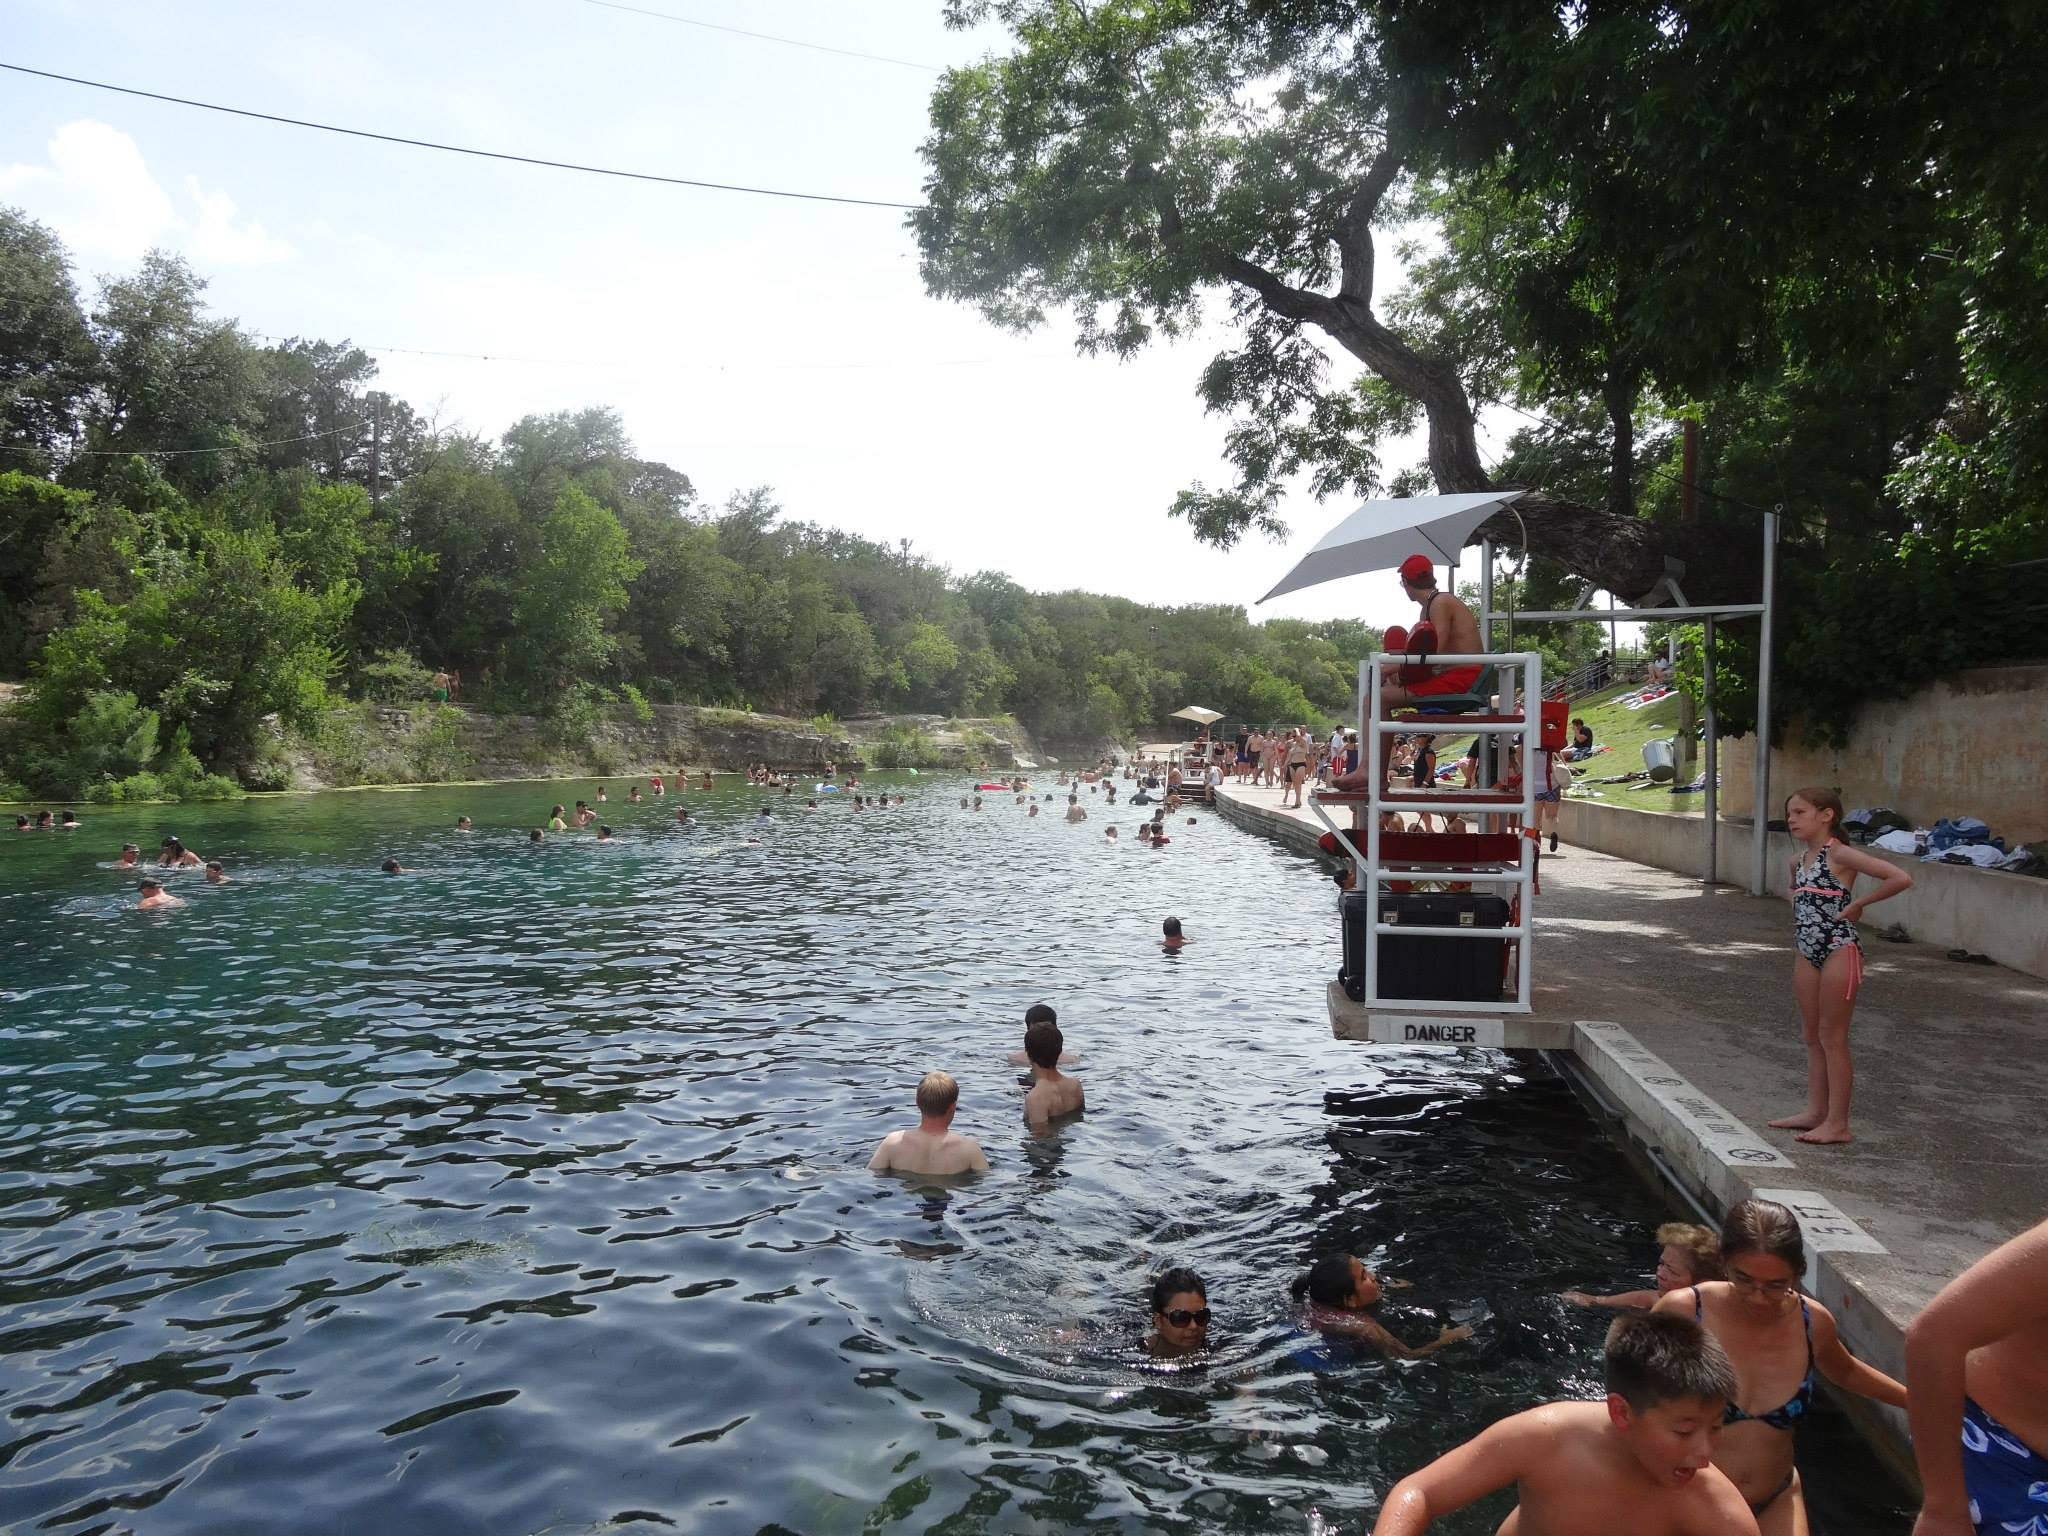 Barton springs pool and lifeguard